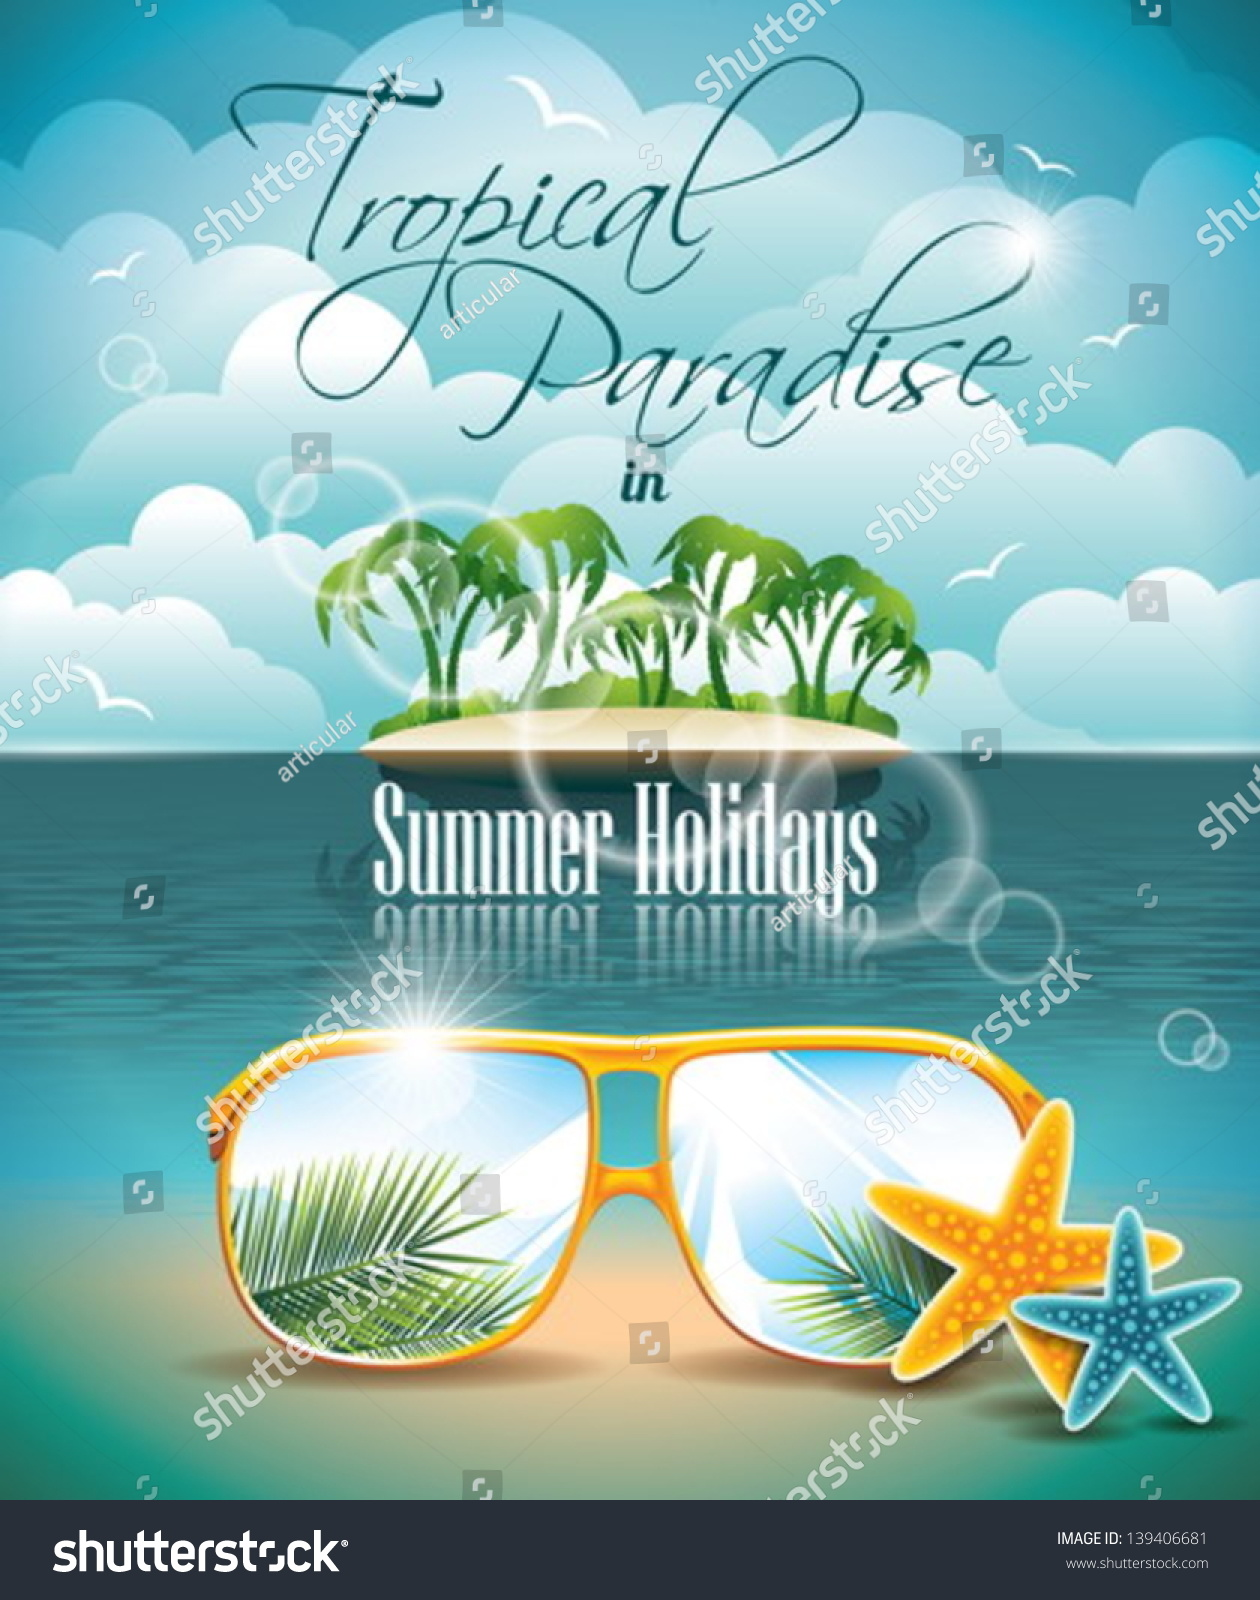 vector summer holiday flyer design palm stock vector 139406681 vector summer holiday flyer design palm trees and paradise island on clouds background eps10